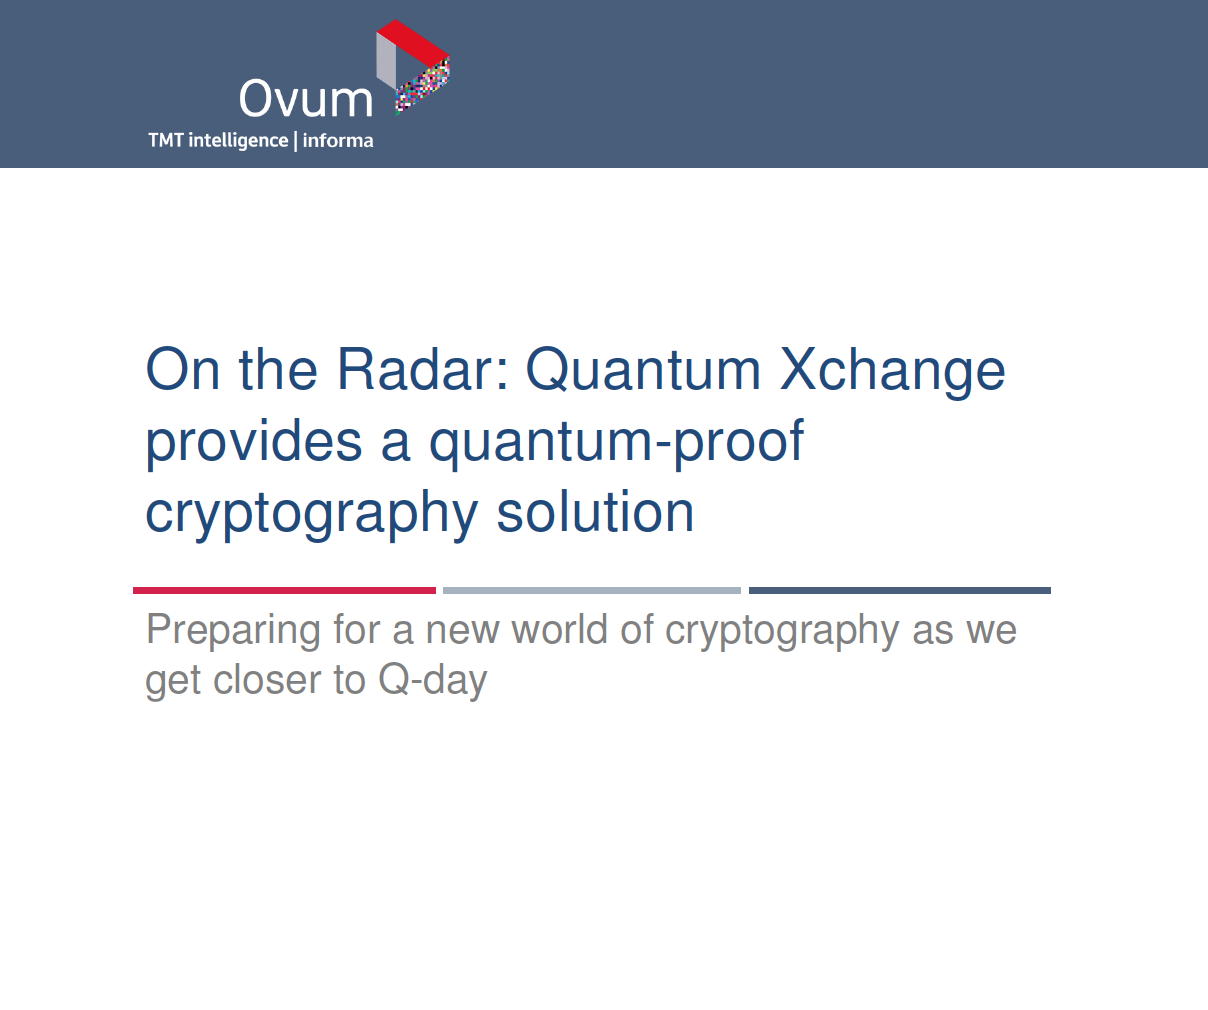 On the Radar: Quantum Xchange provides a quantum-proof cryptography solution